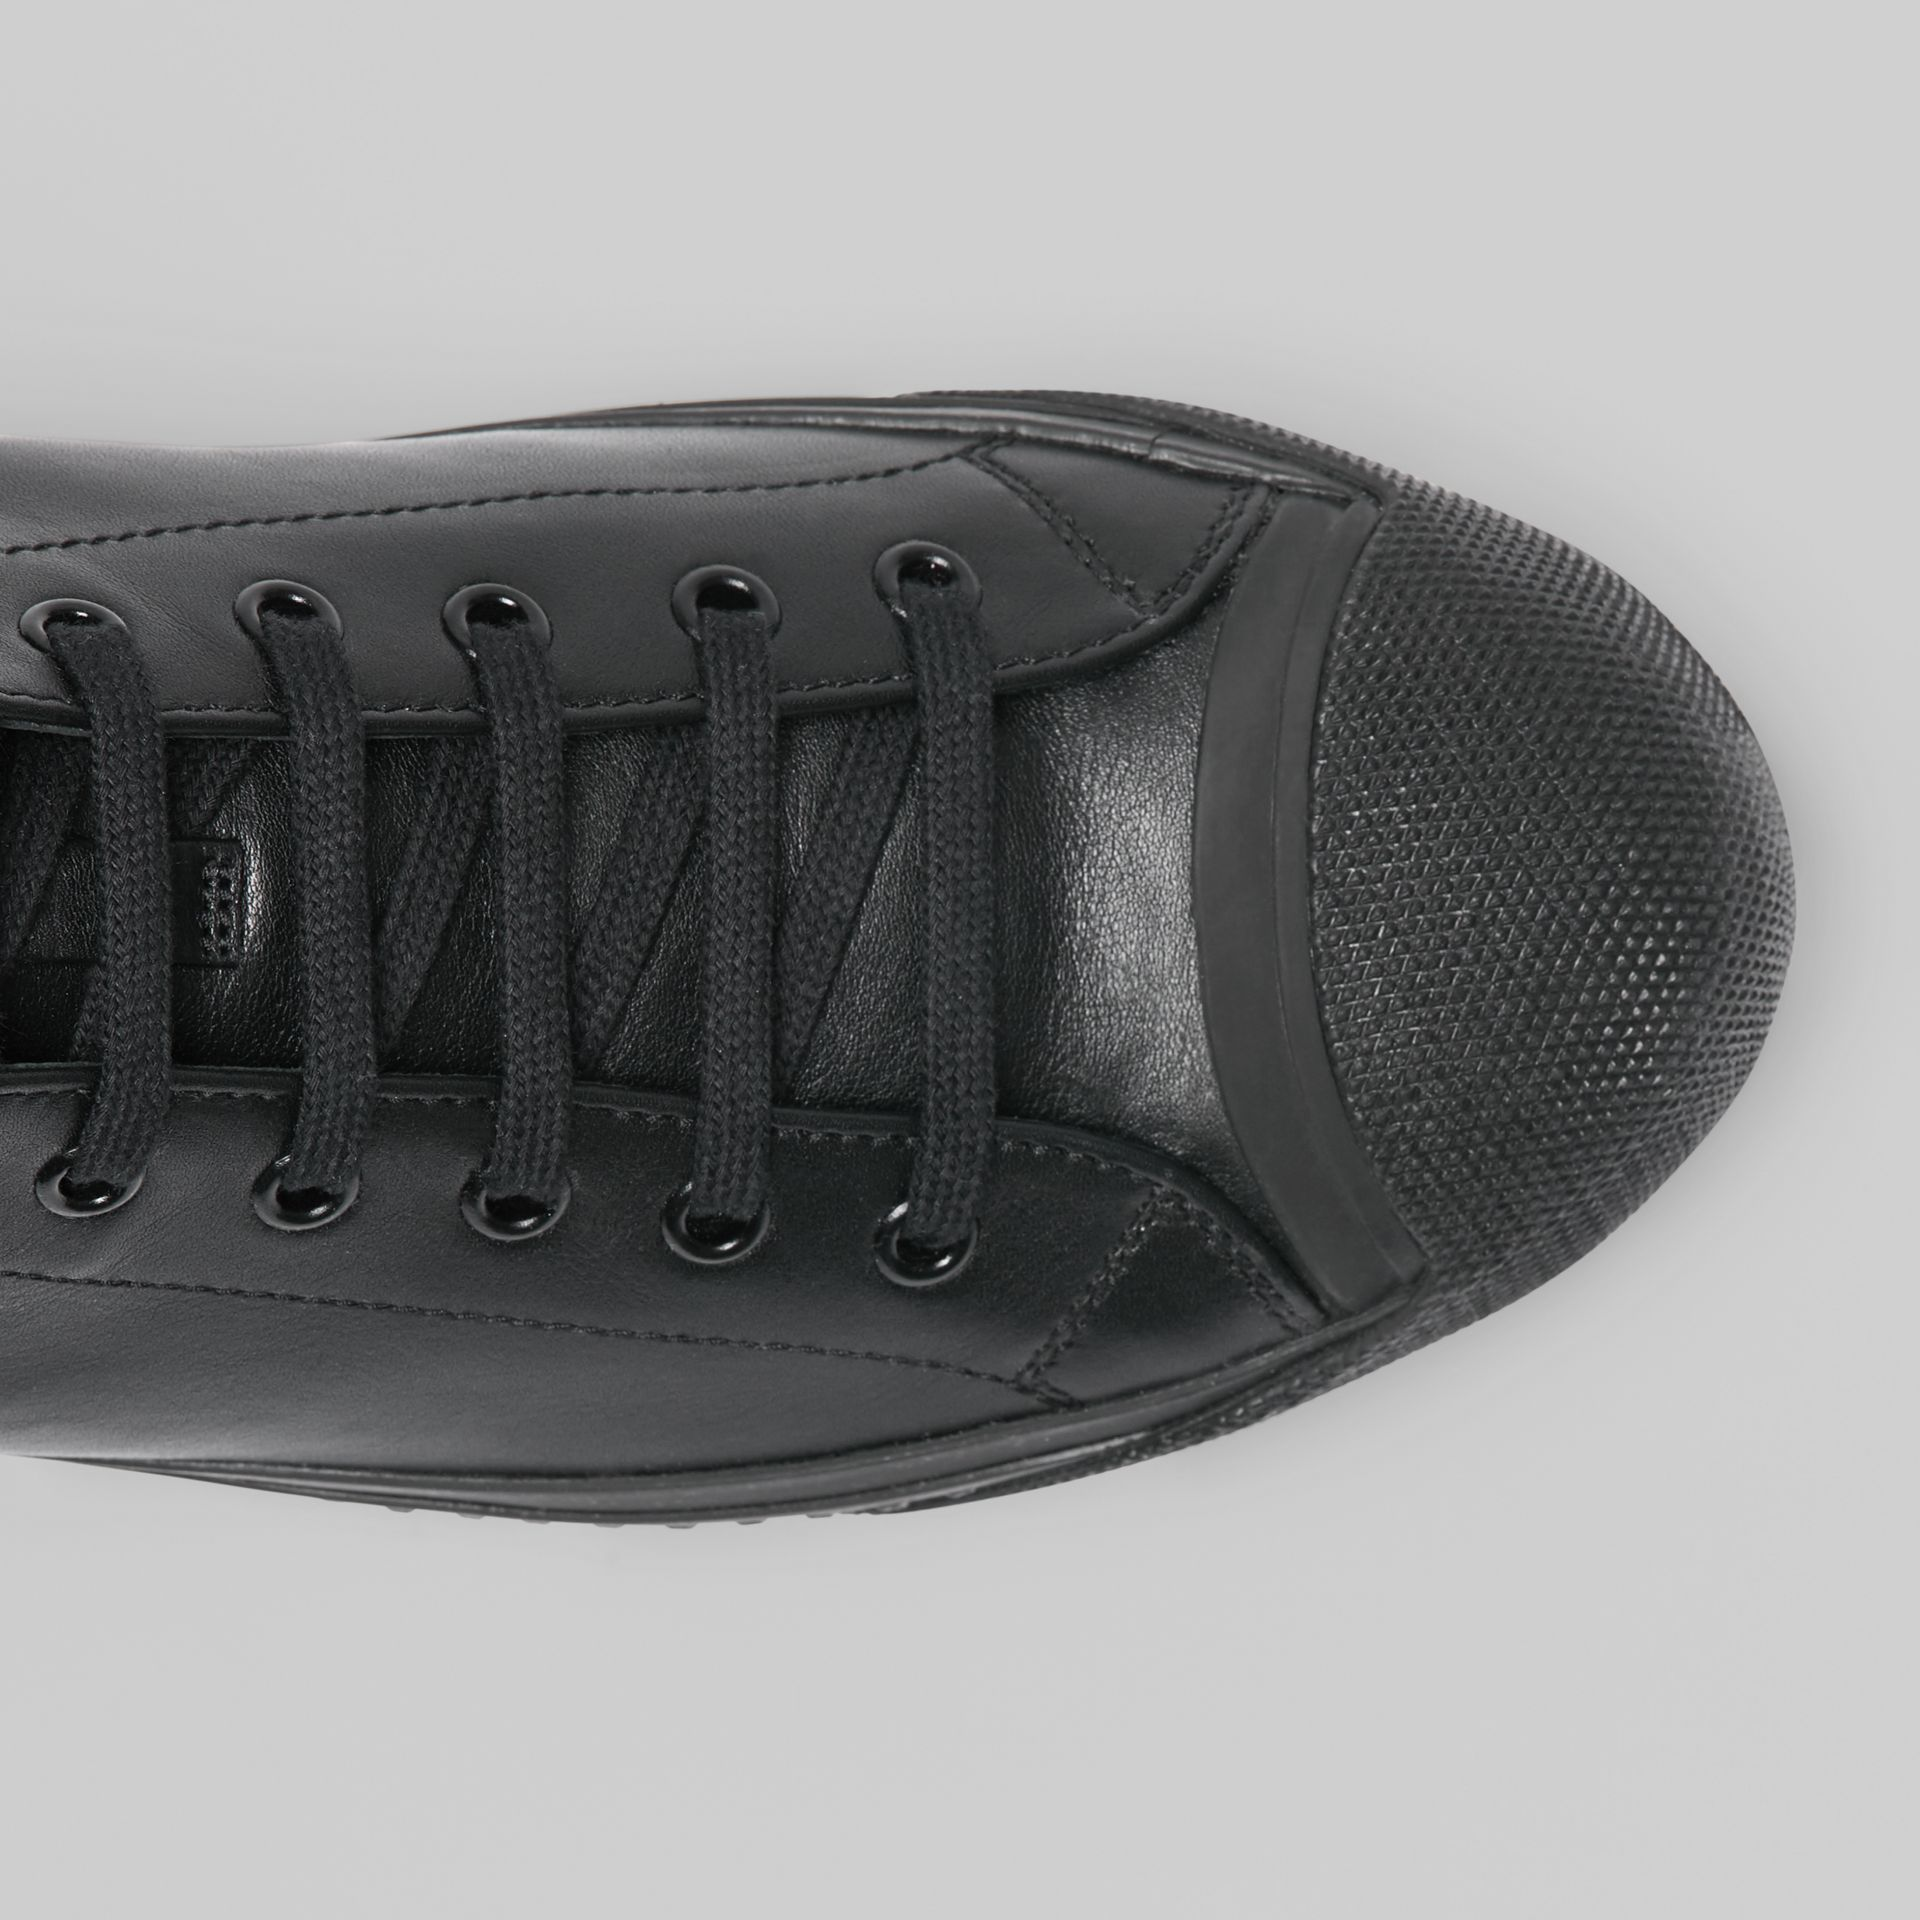 Leather and Neoprene High-top Sneakers in Black - Men | Burberry - gallery image 1